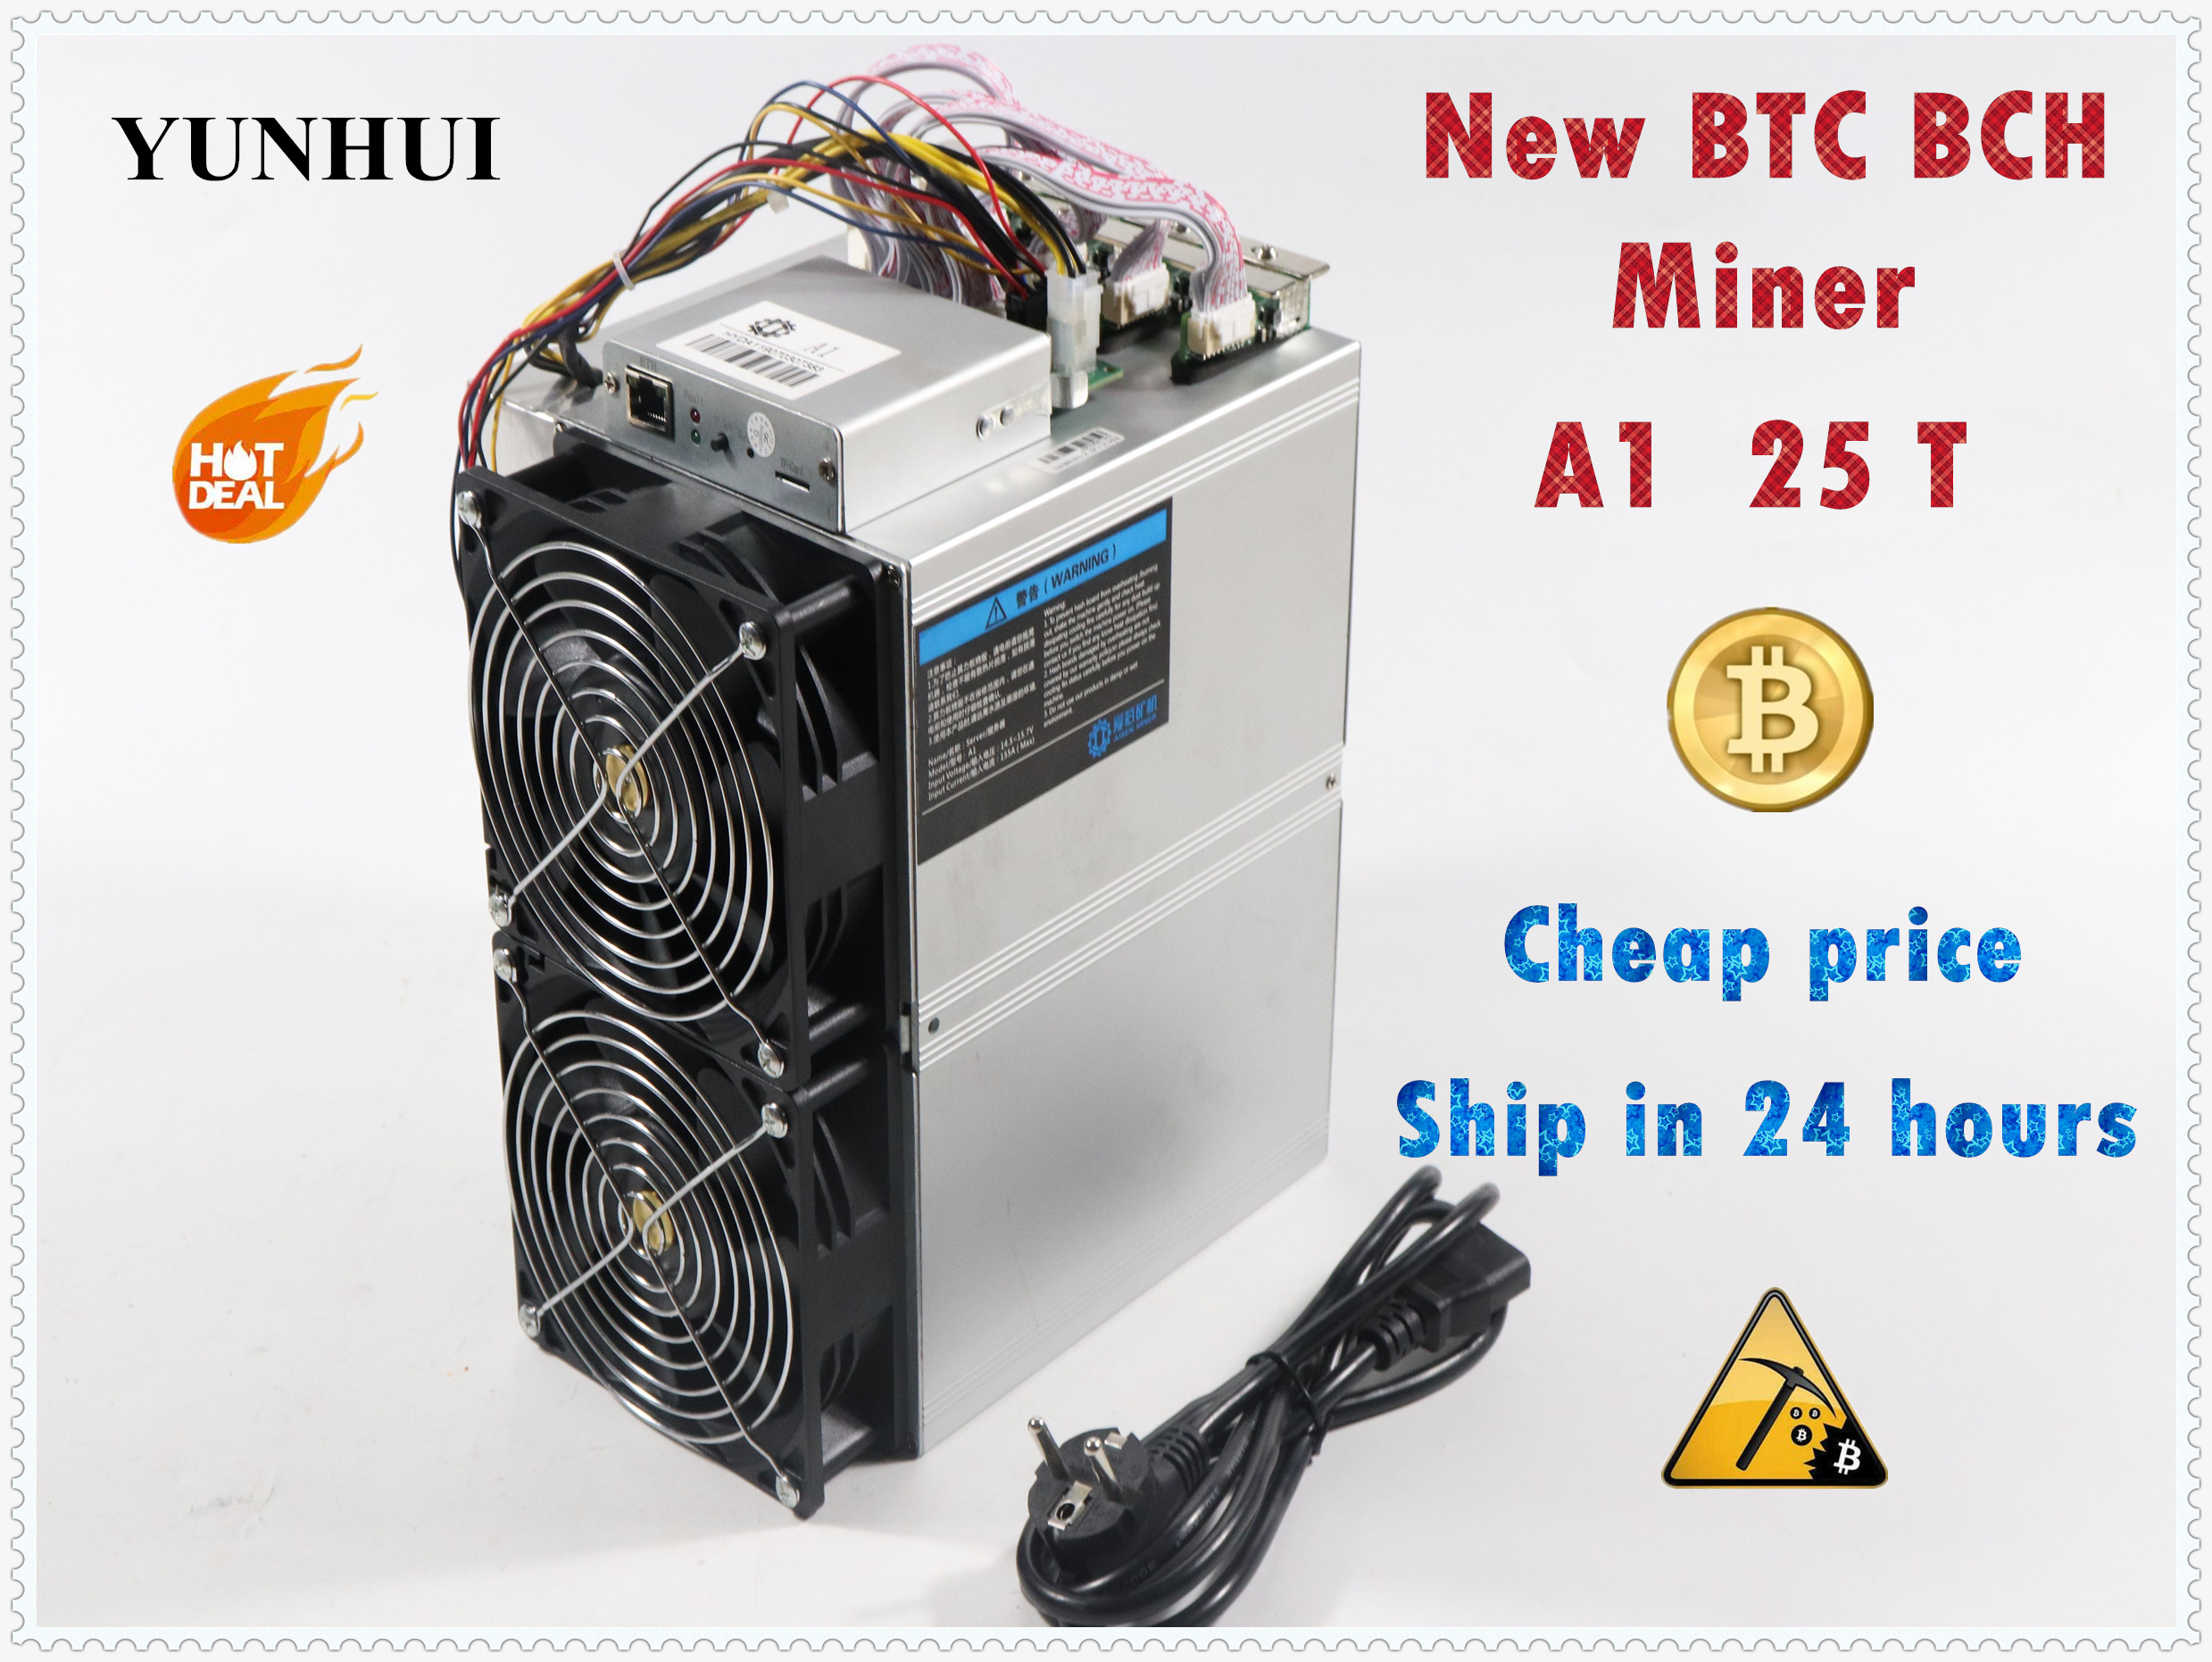 PSU Miner Aixin A1 Love-Core S17 S11 S15 25T Newest with Economic Than S9 S11/S15/S17/..